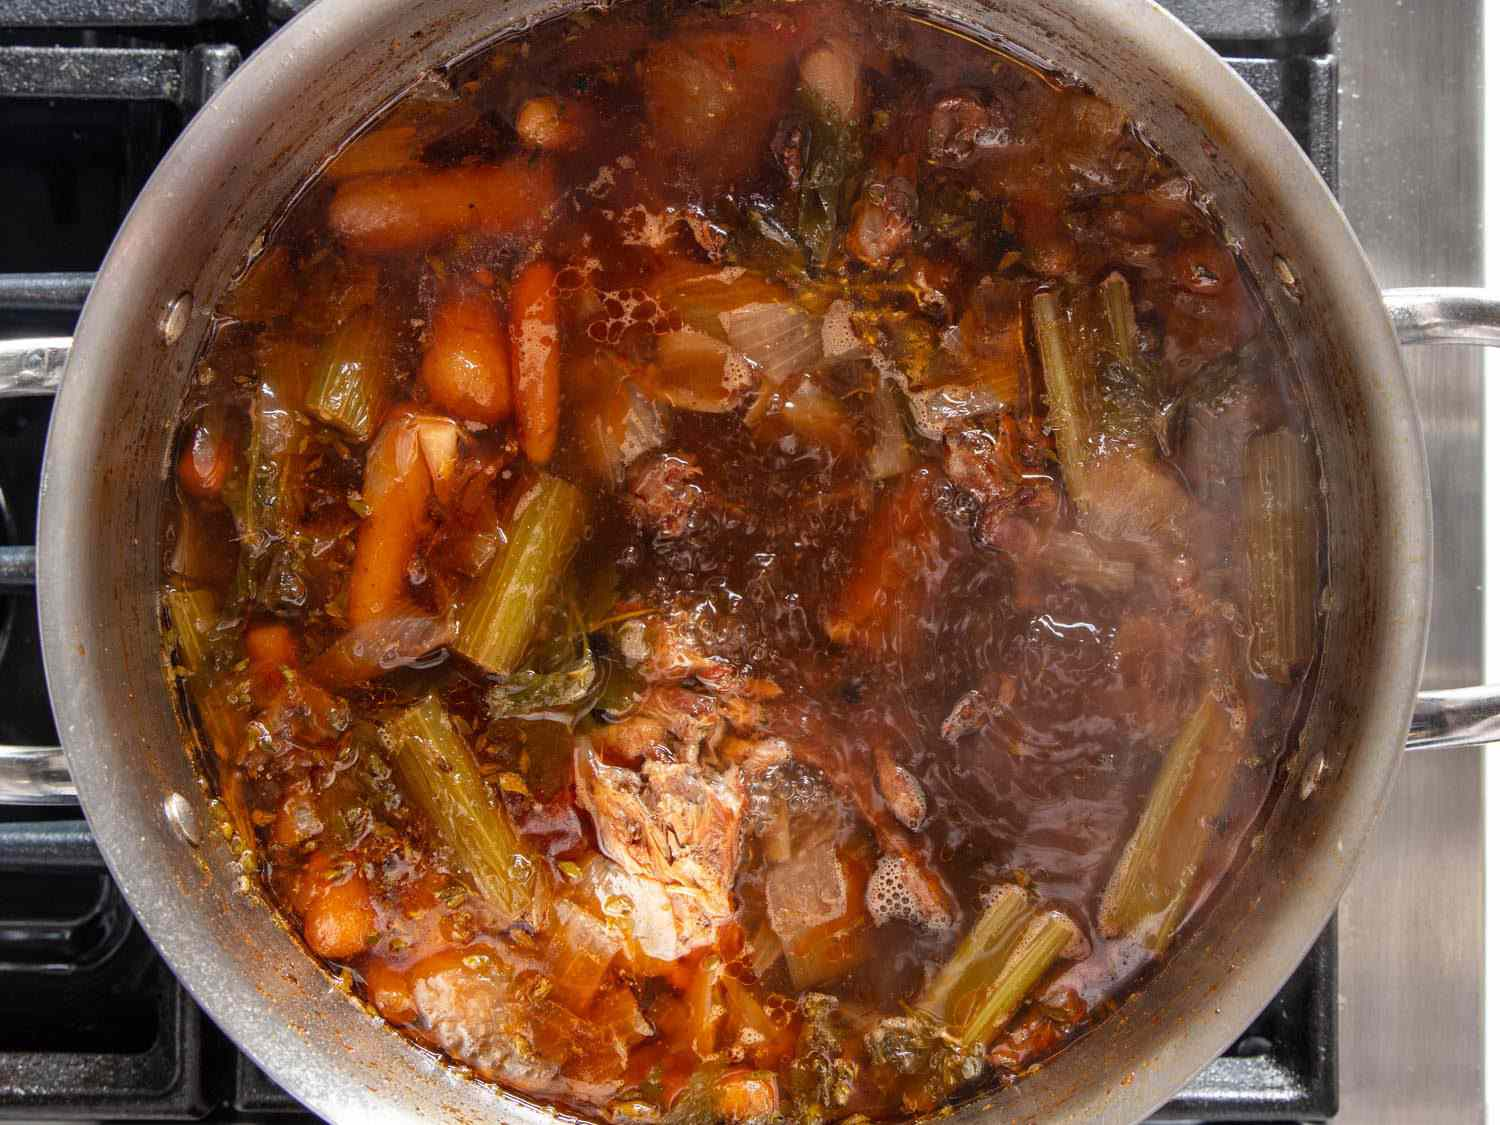 Closeup overhead of duck stock simmering in a stockpot.